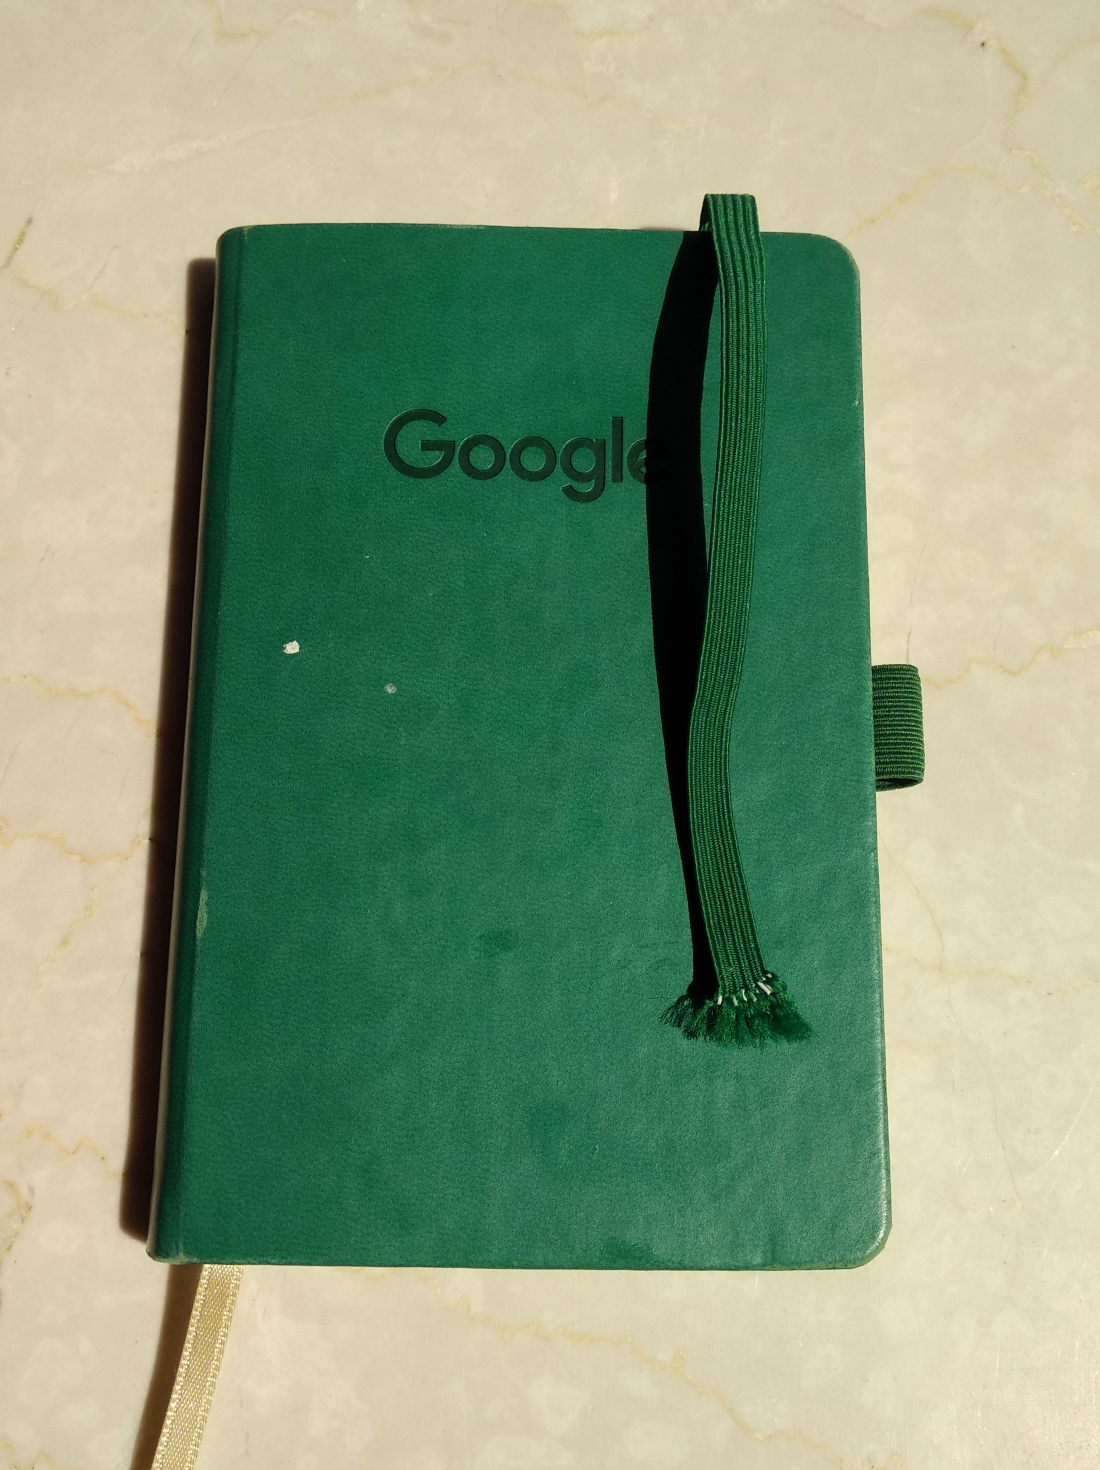 A dark green notebook with the Google logo.